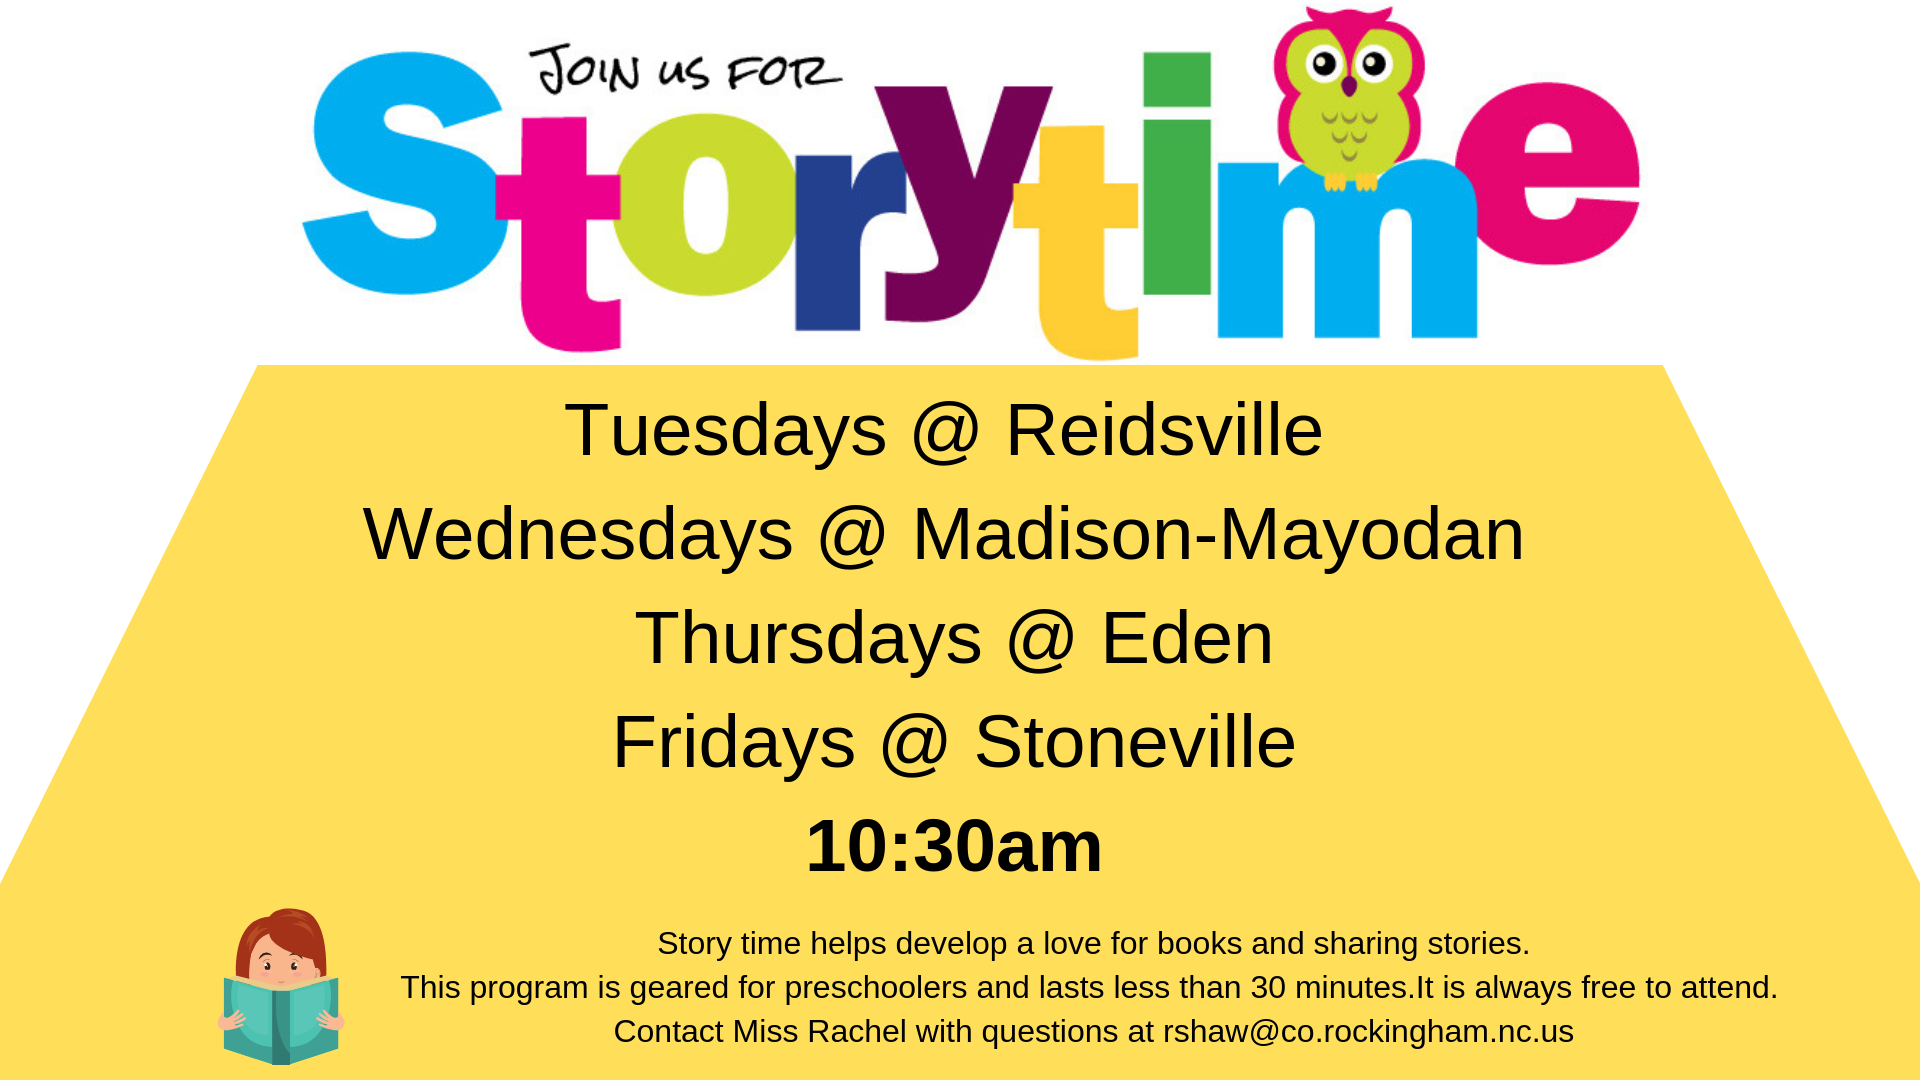 Join us for Story Time Tuesdays at the Reidsville Library, Wednesdays at the Madison-Mayodan Library, Thursdays at the Eden Library, and Fridays at the Stoneville Library at 10:30 a.m.  This program is geared towards preschoolers, lasts less than 30 minutes and is free to attend.  If you have any questions contact Miss Rachel at rholden@co.rockingham.nc.us